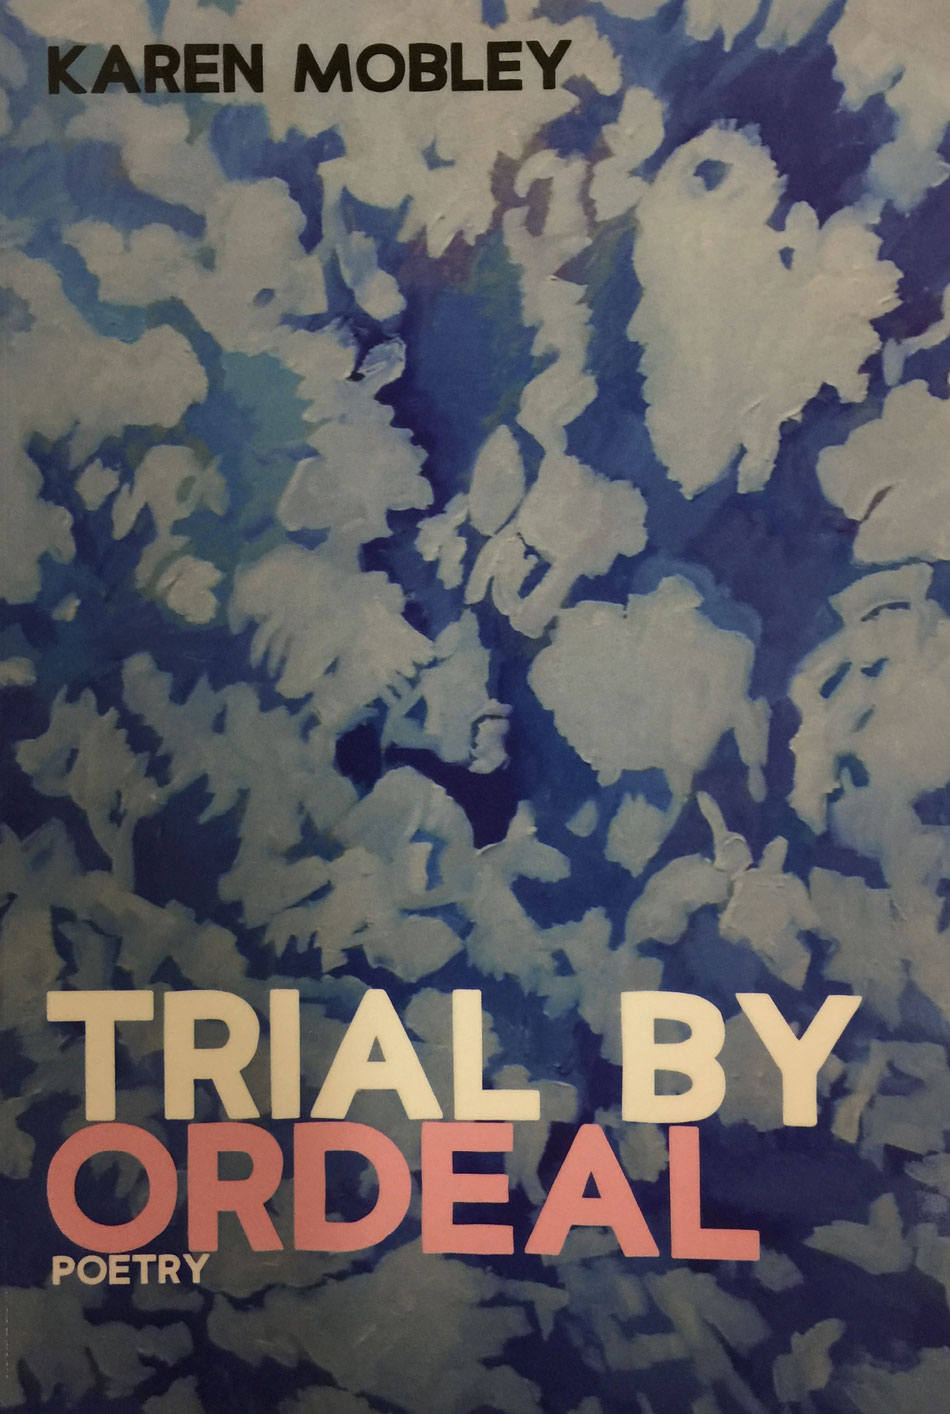 Trial By Ordeal Poetry by Karen mobile book cover.